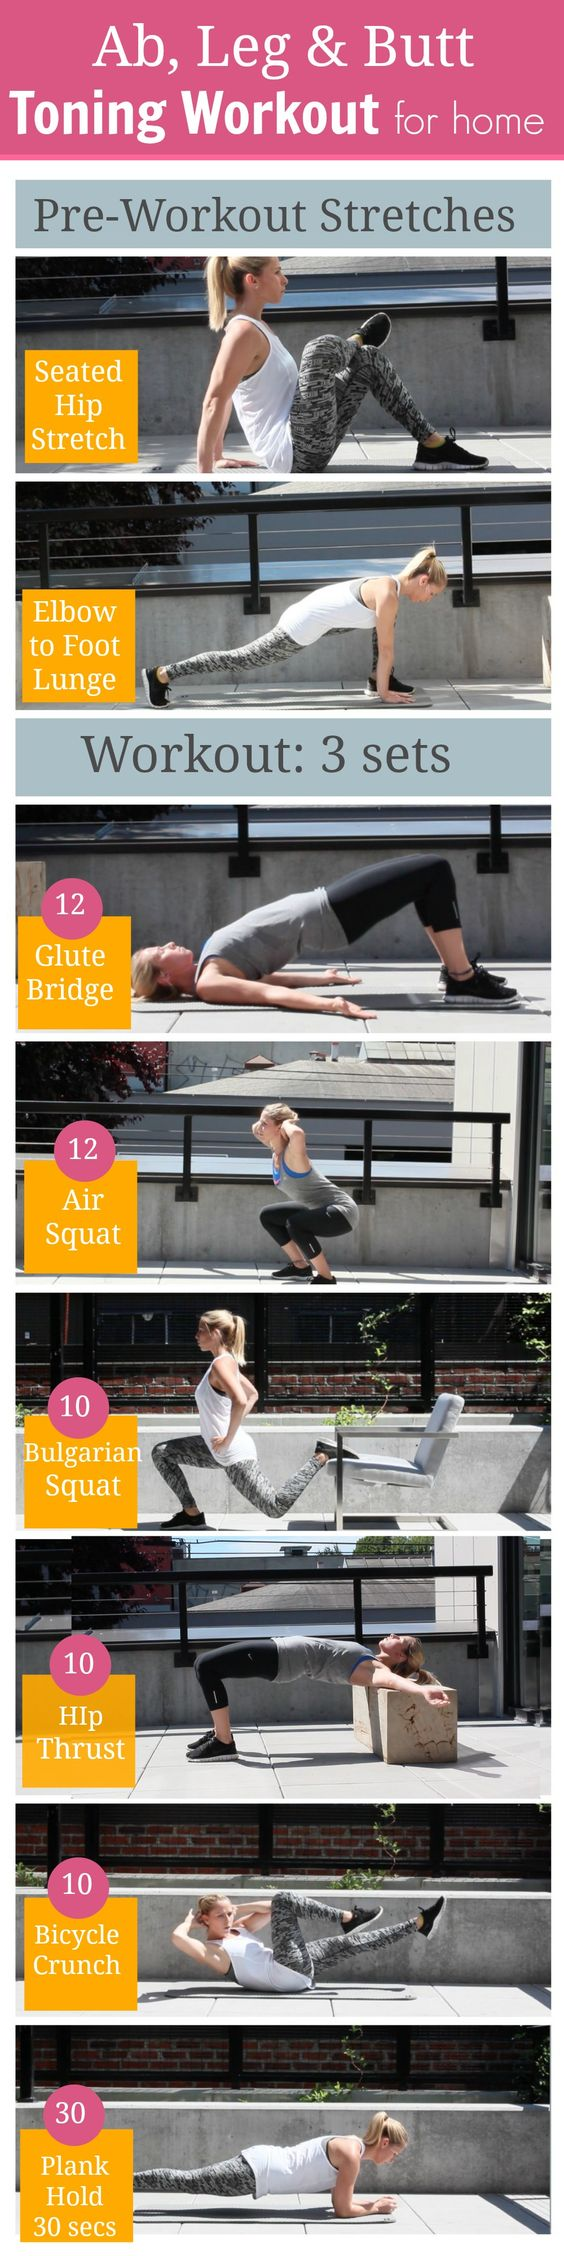 Ab, Leg and Butt Toning Workout